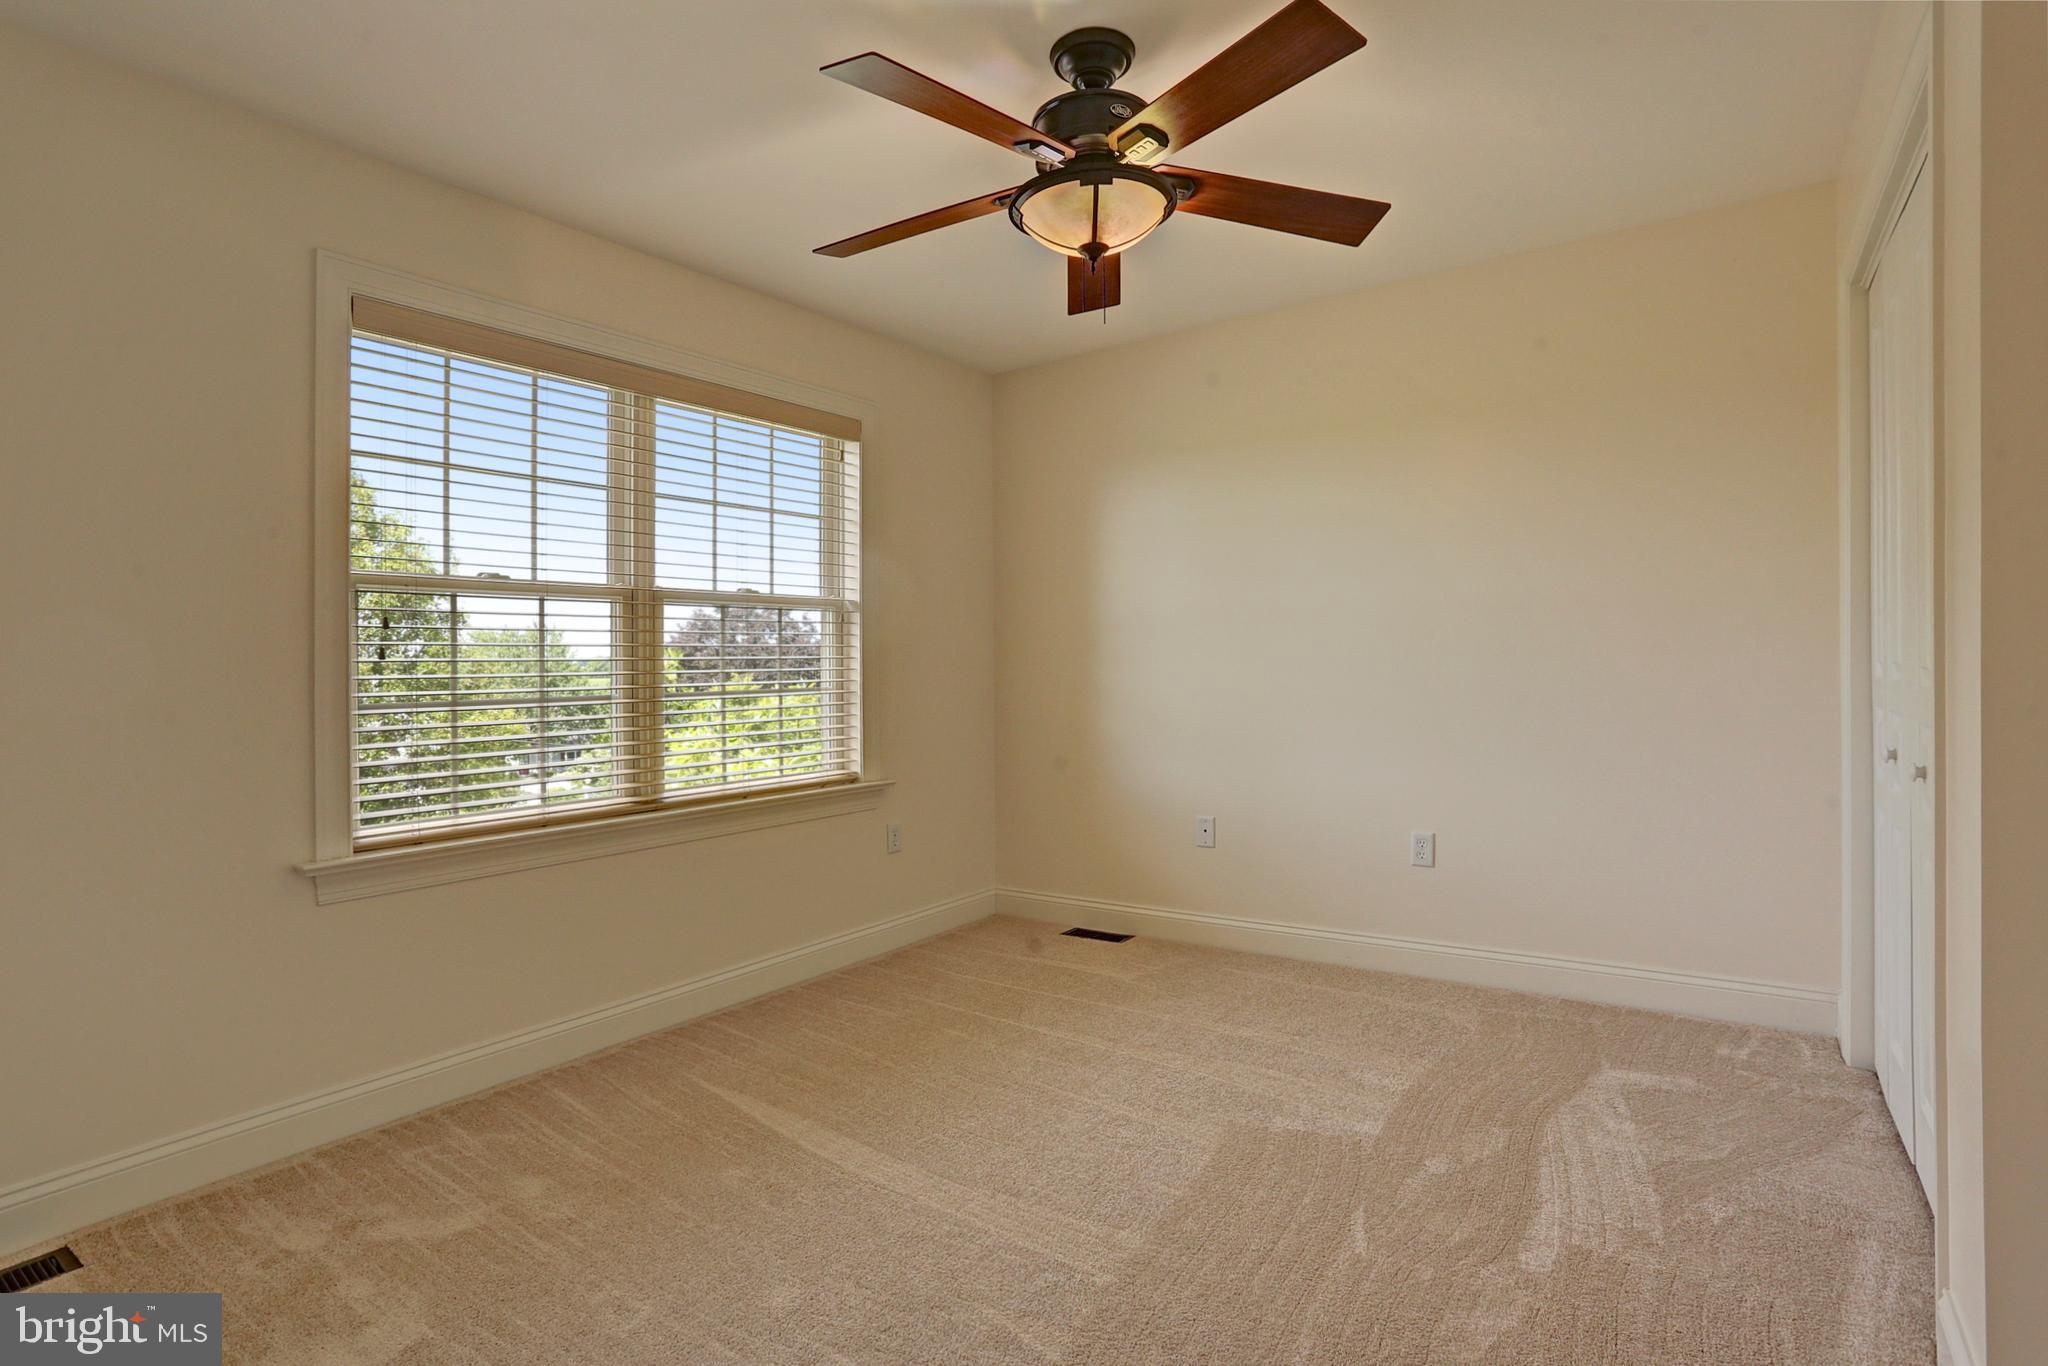 Bedroom 5 with Carpet and a Ceiling Fan